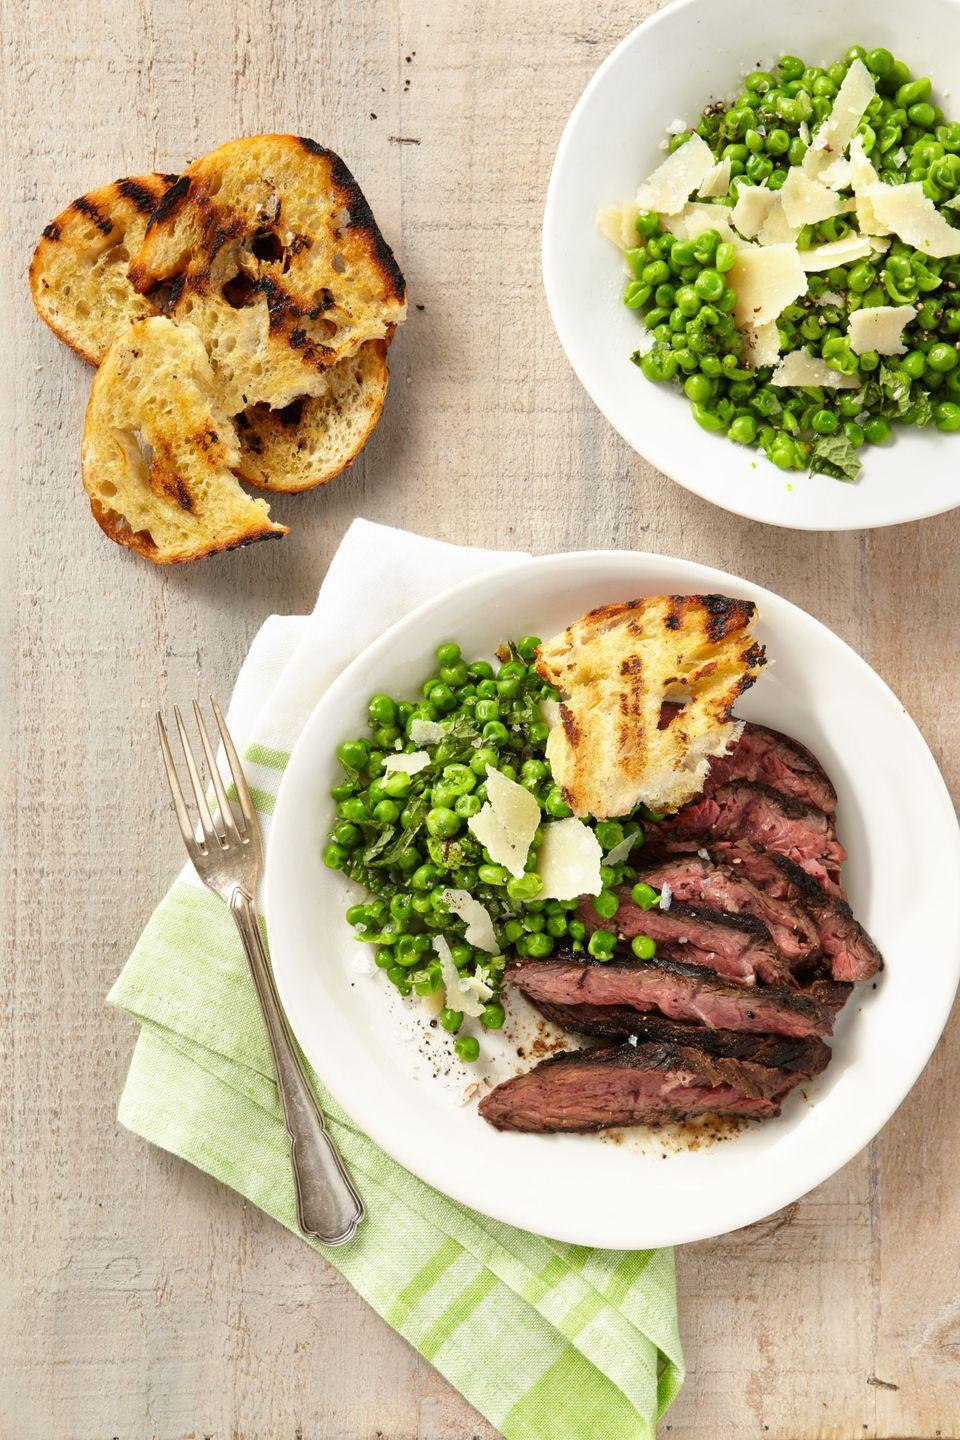 """<p>Put a fresh spin on the classic steak dinner. </p><p><strong><a href=""""https://www.countryliving.com/food-drinks/recipes/a37762/grilled-cumin-rubbed-hanger-steak-smashed-minty-peas-grilled-bread-recipe/"""" rel=""""nofollow noopener"""" target=""""_blank"""" data-ylk=""""slk:Get the recipe"""" class=""""link rapid-noclick-resp"""">Get the recipe</a>.</strong></p>"""